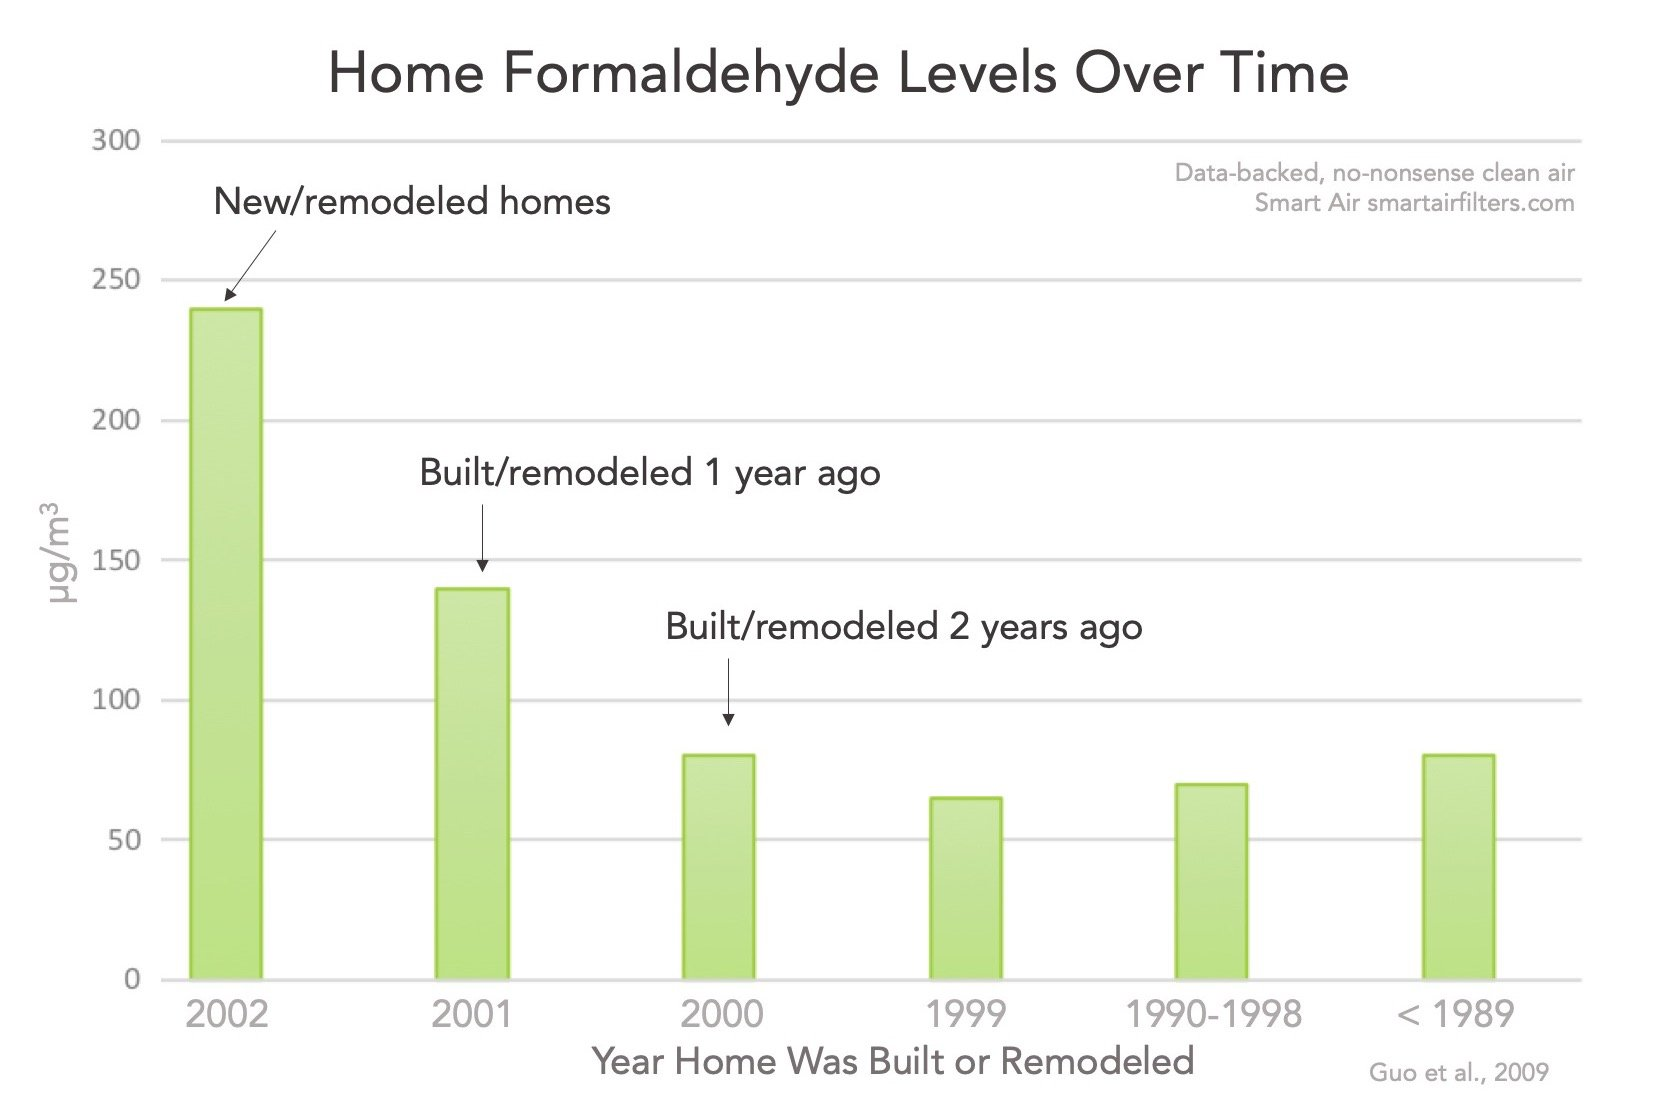 How long does it take formaldehyde to off-gas new remodeled home